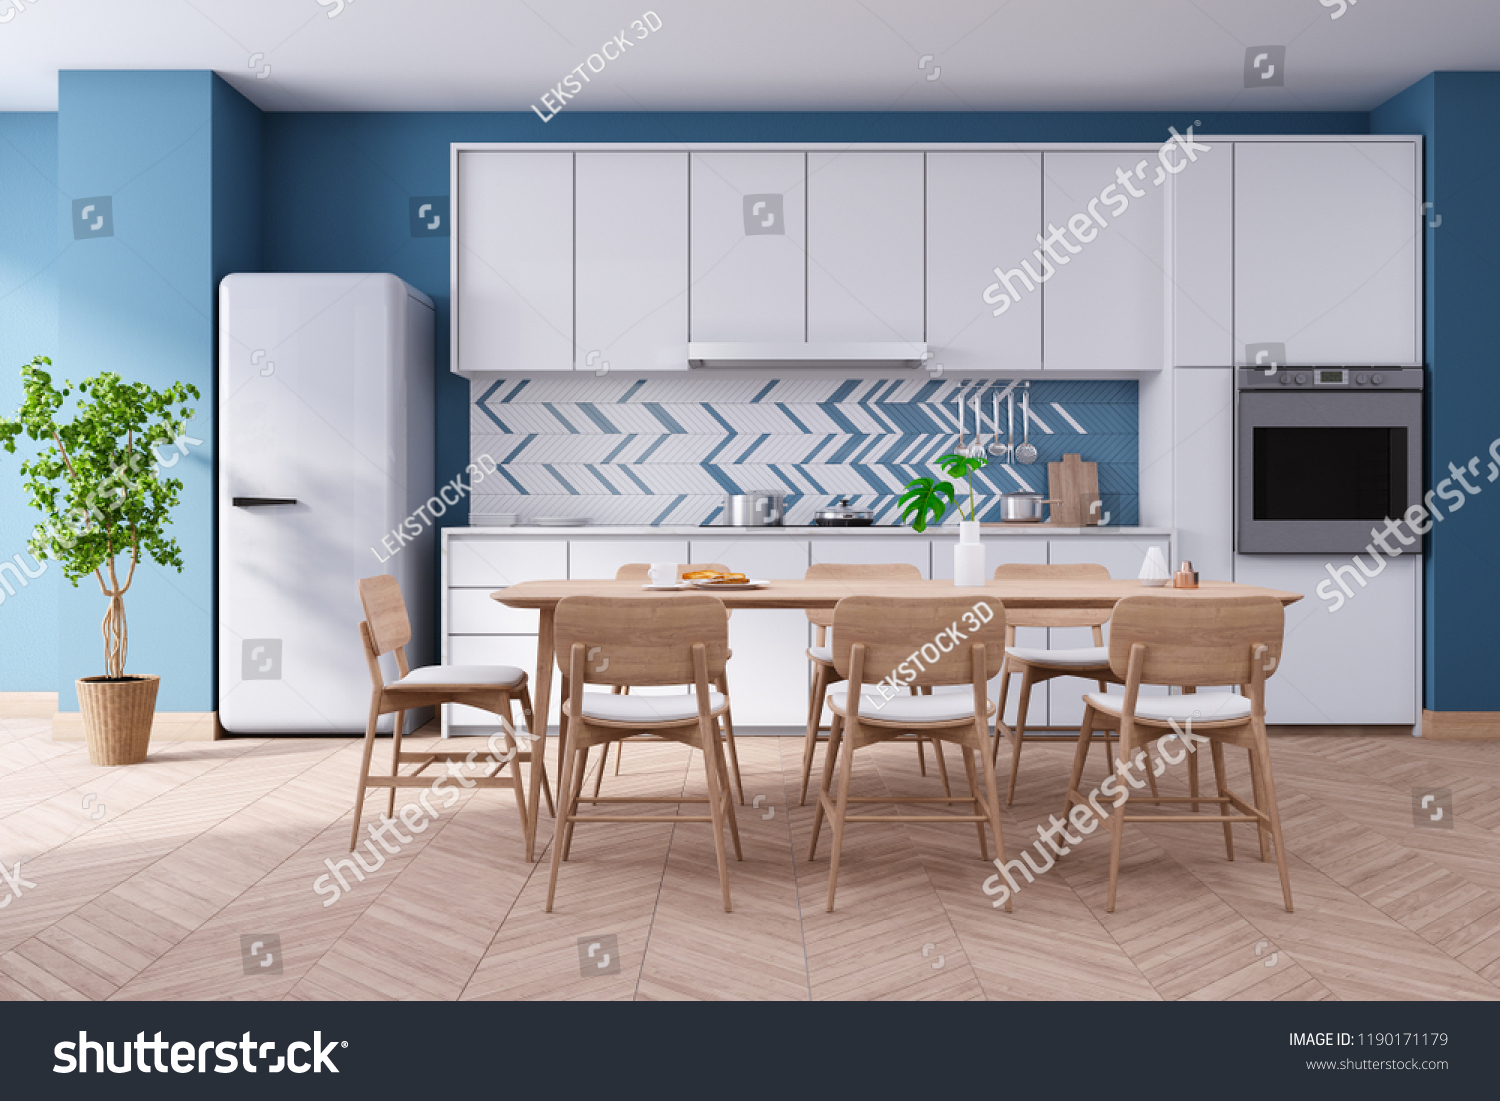 Luxurious Modern Blue Kitchen Room Interior Stock